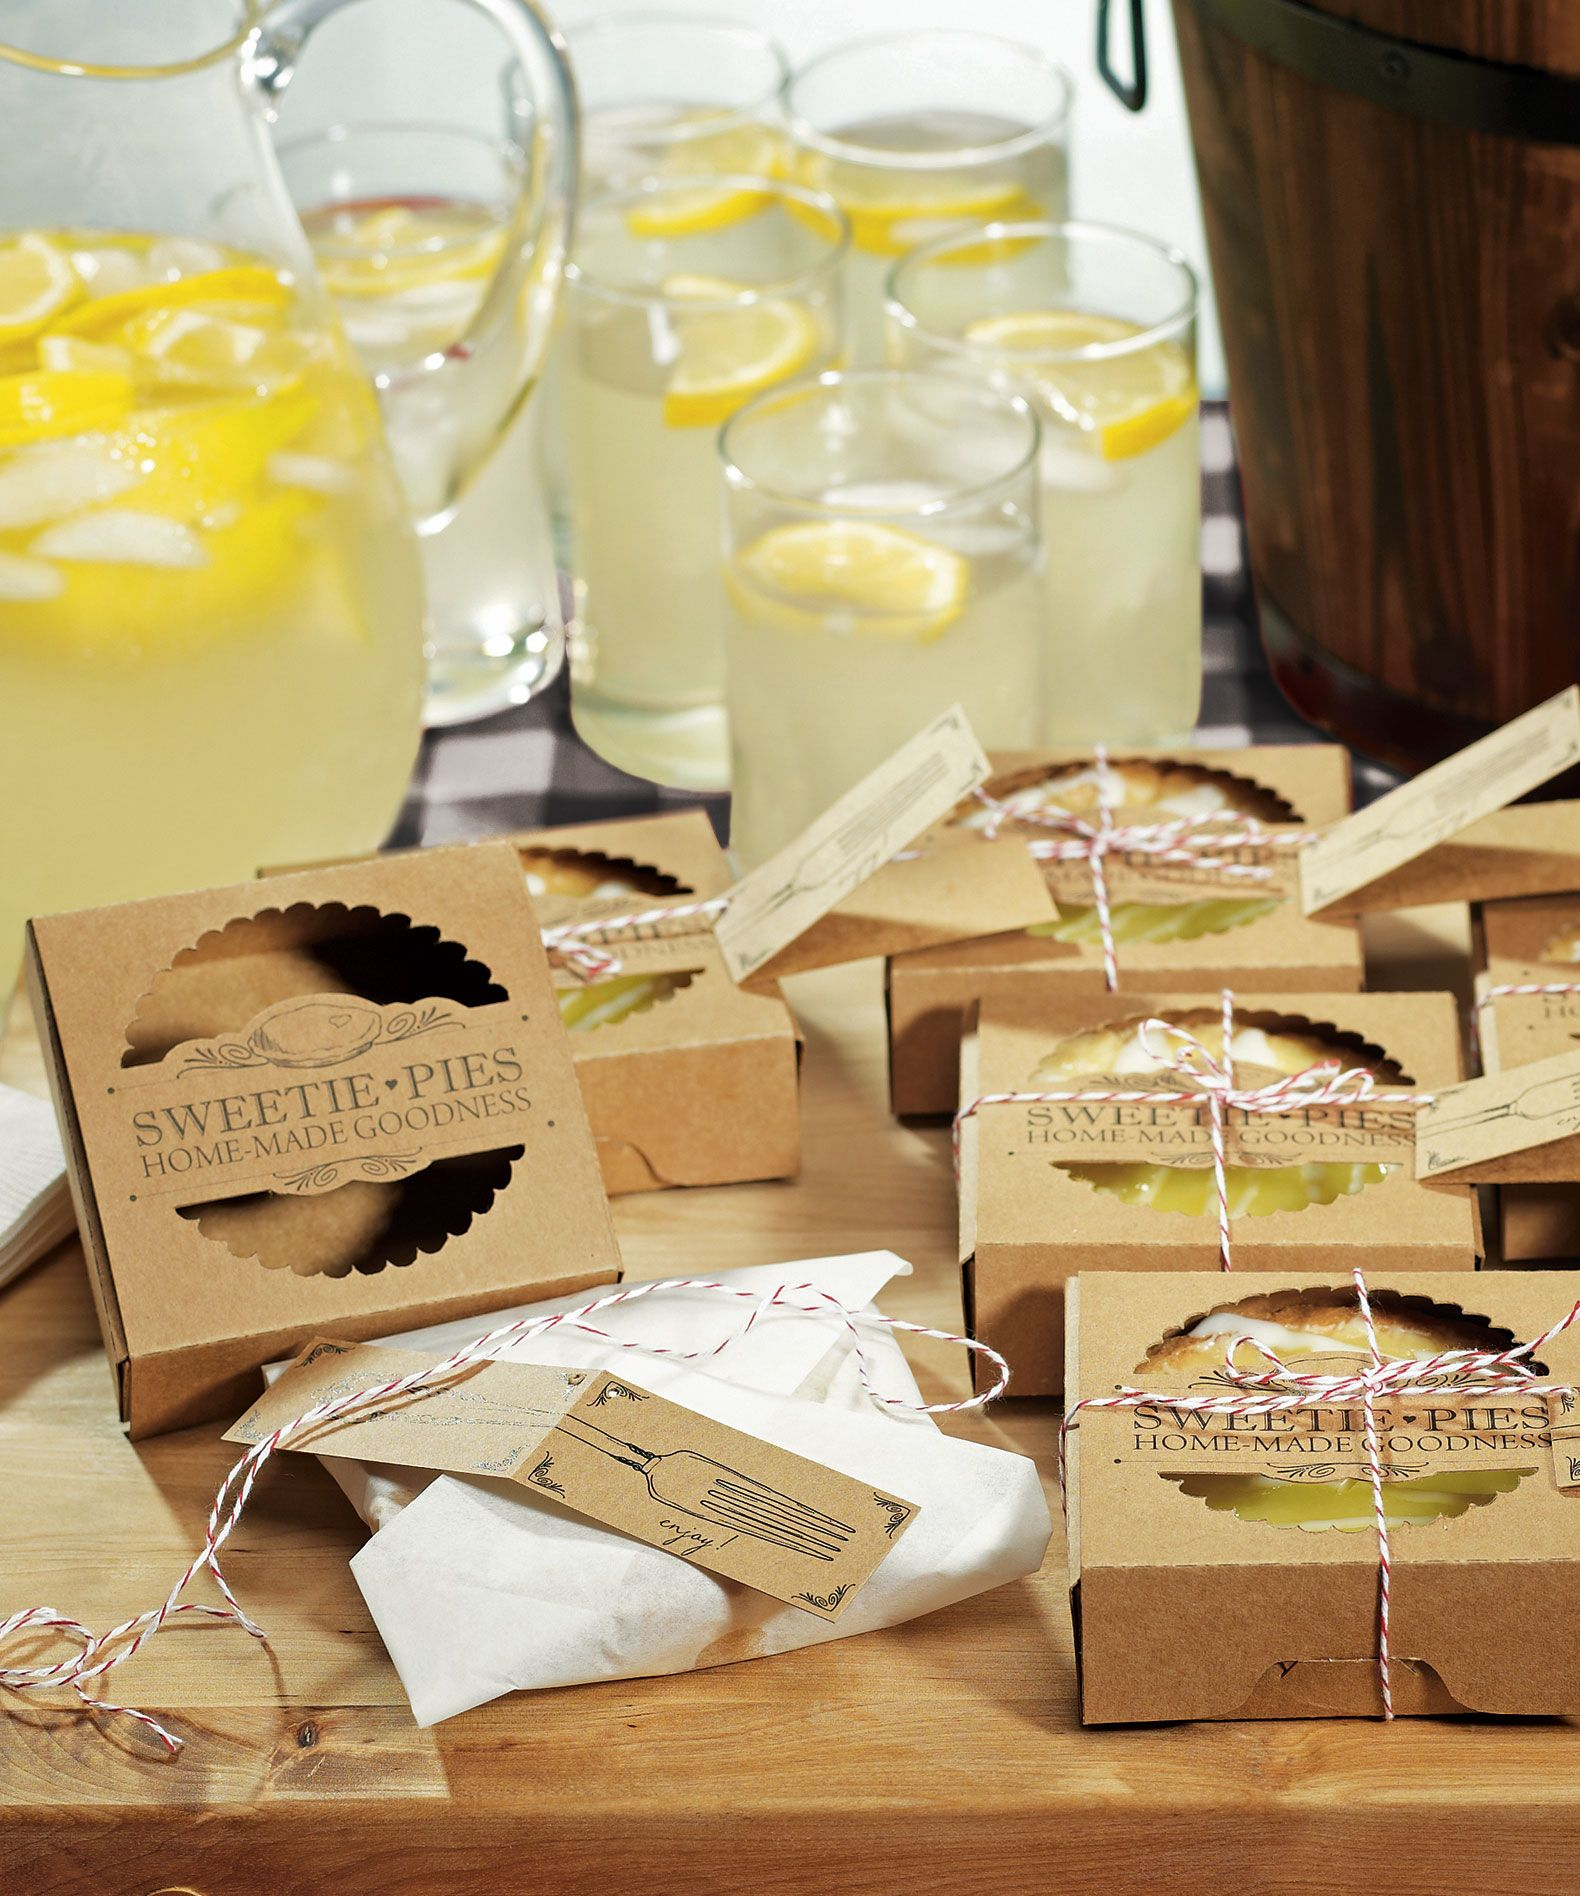 Wedding Ideas Sweetie Pies Mini Pie Packaging Kits Give Your Guests Something